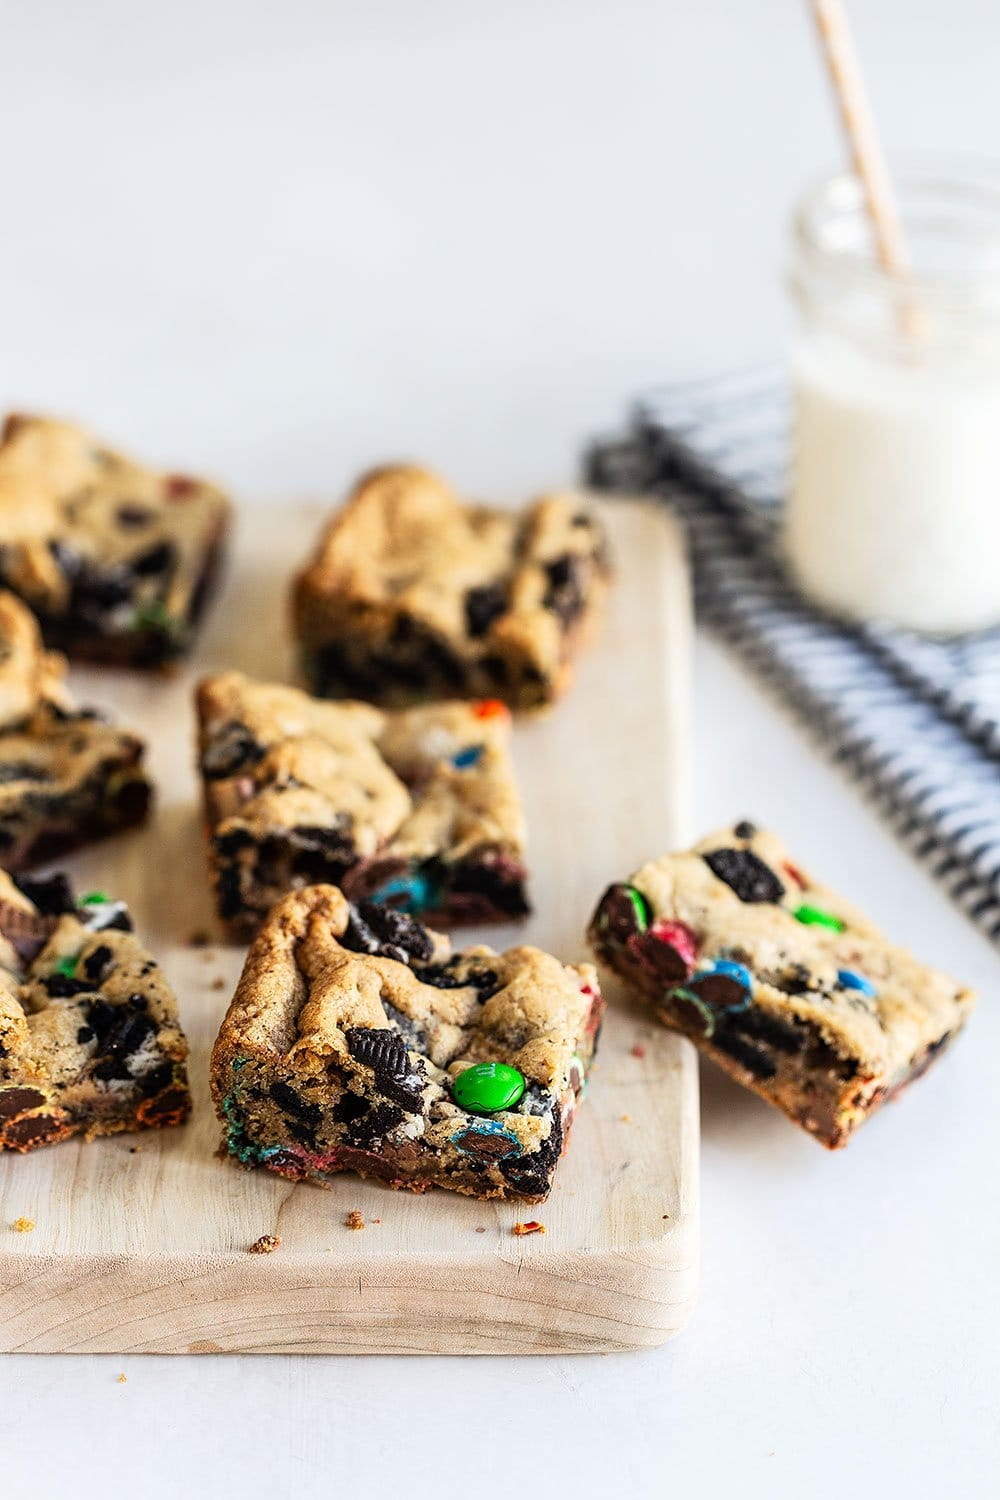 Loaded cookie bar squares on a cutting board with a glass of milk